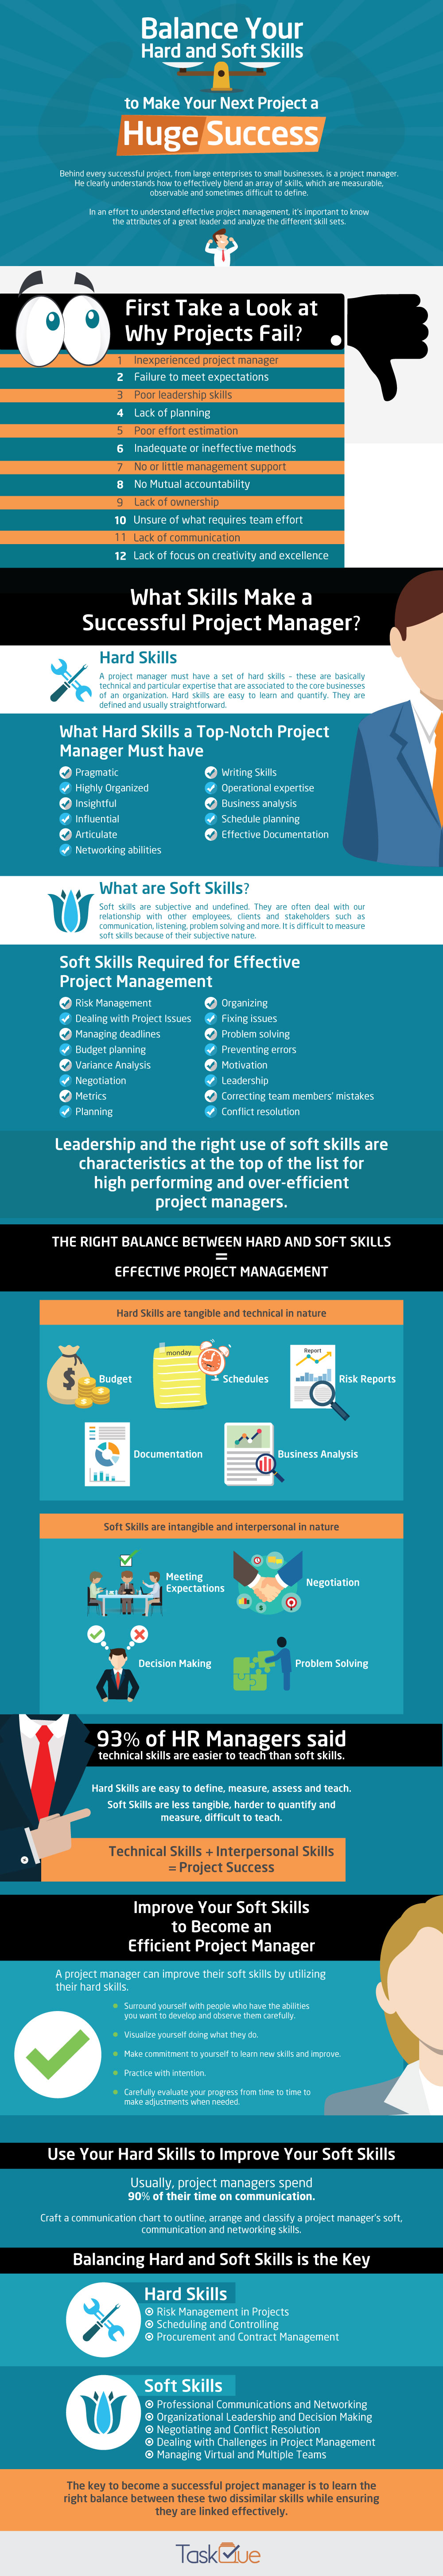 Balance Your Hard and Soft Skills to Make Your Next Project a Huge Success